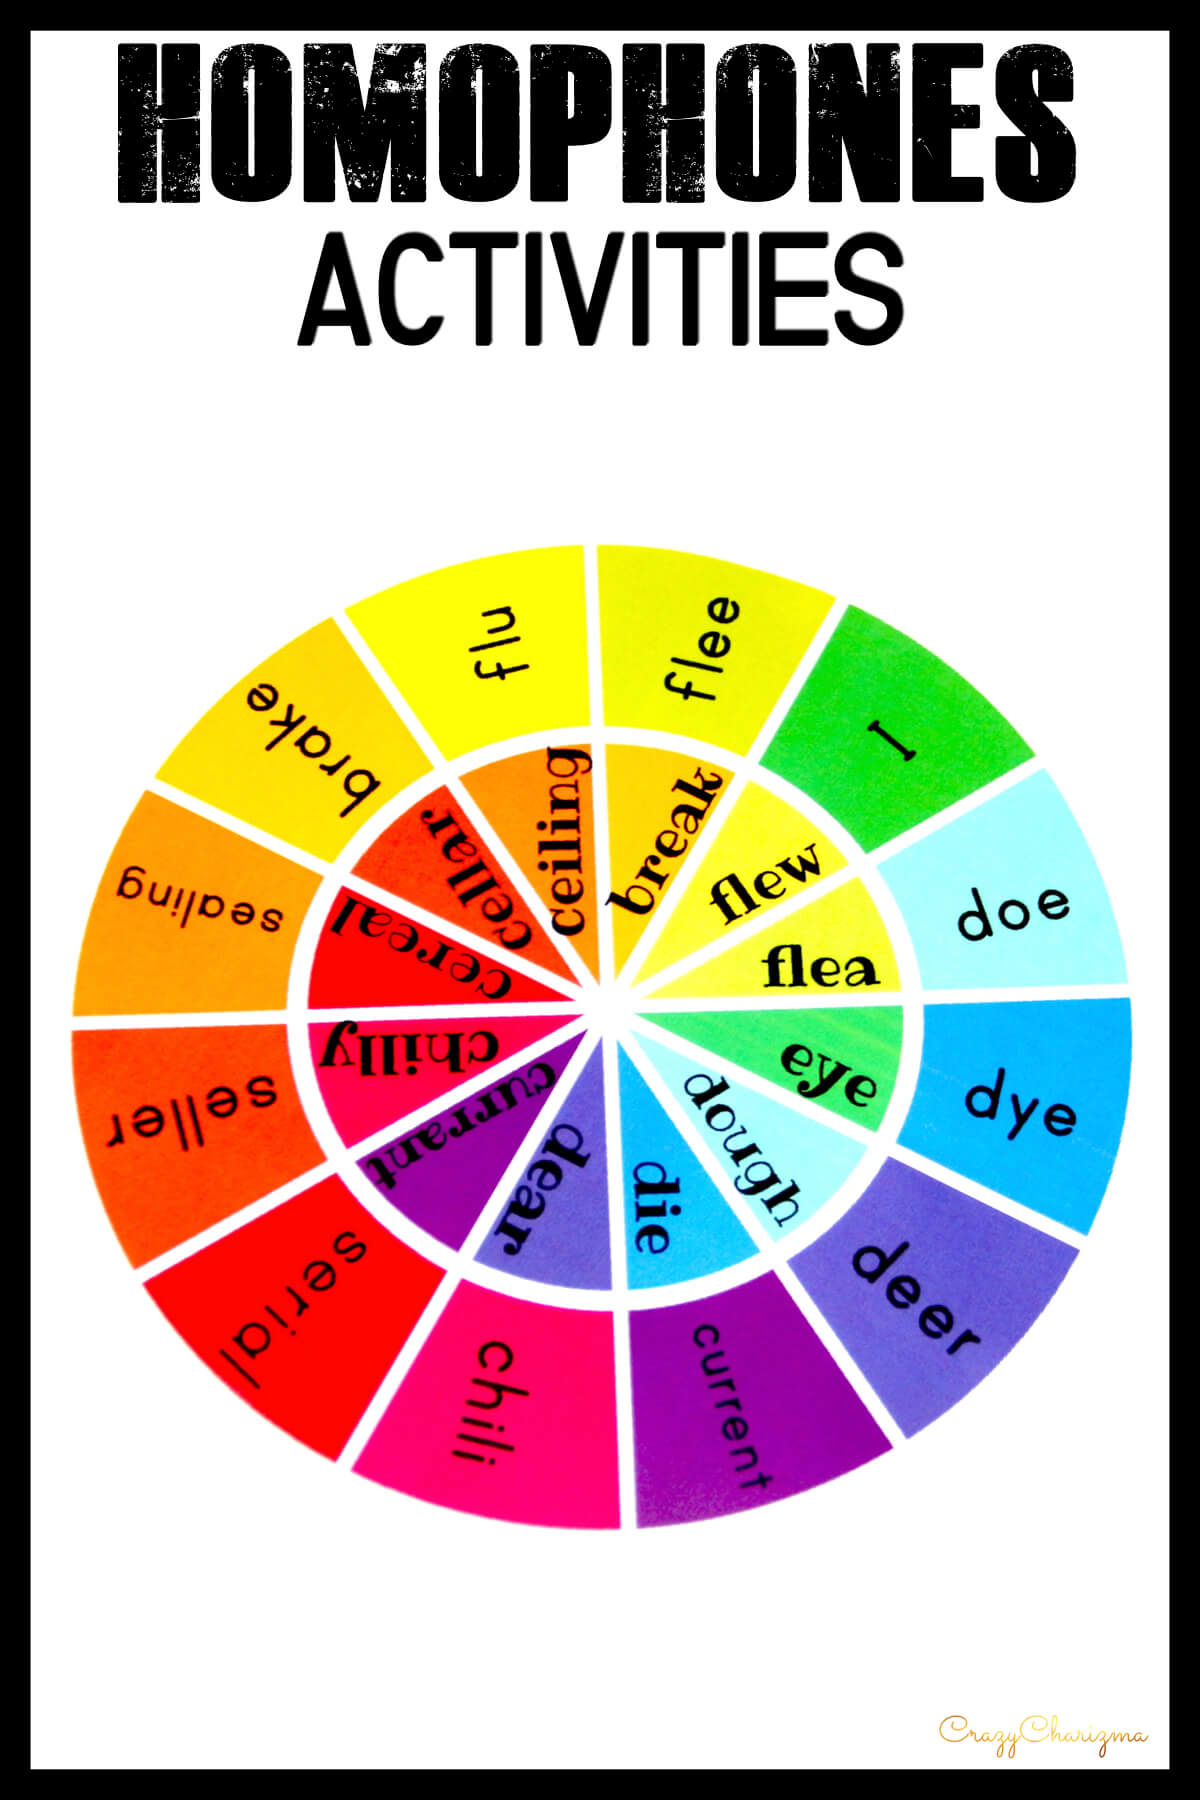 Homophones activities - Wheels are a fun way to introduce, practice or assess homophones. Use for classwork (pairwork or teamwork) or assessment. These 84 pairs of homophones will help your students prepare for state testing (supports common core standards)!